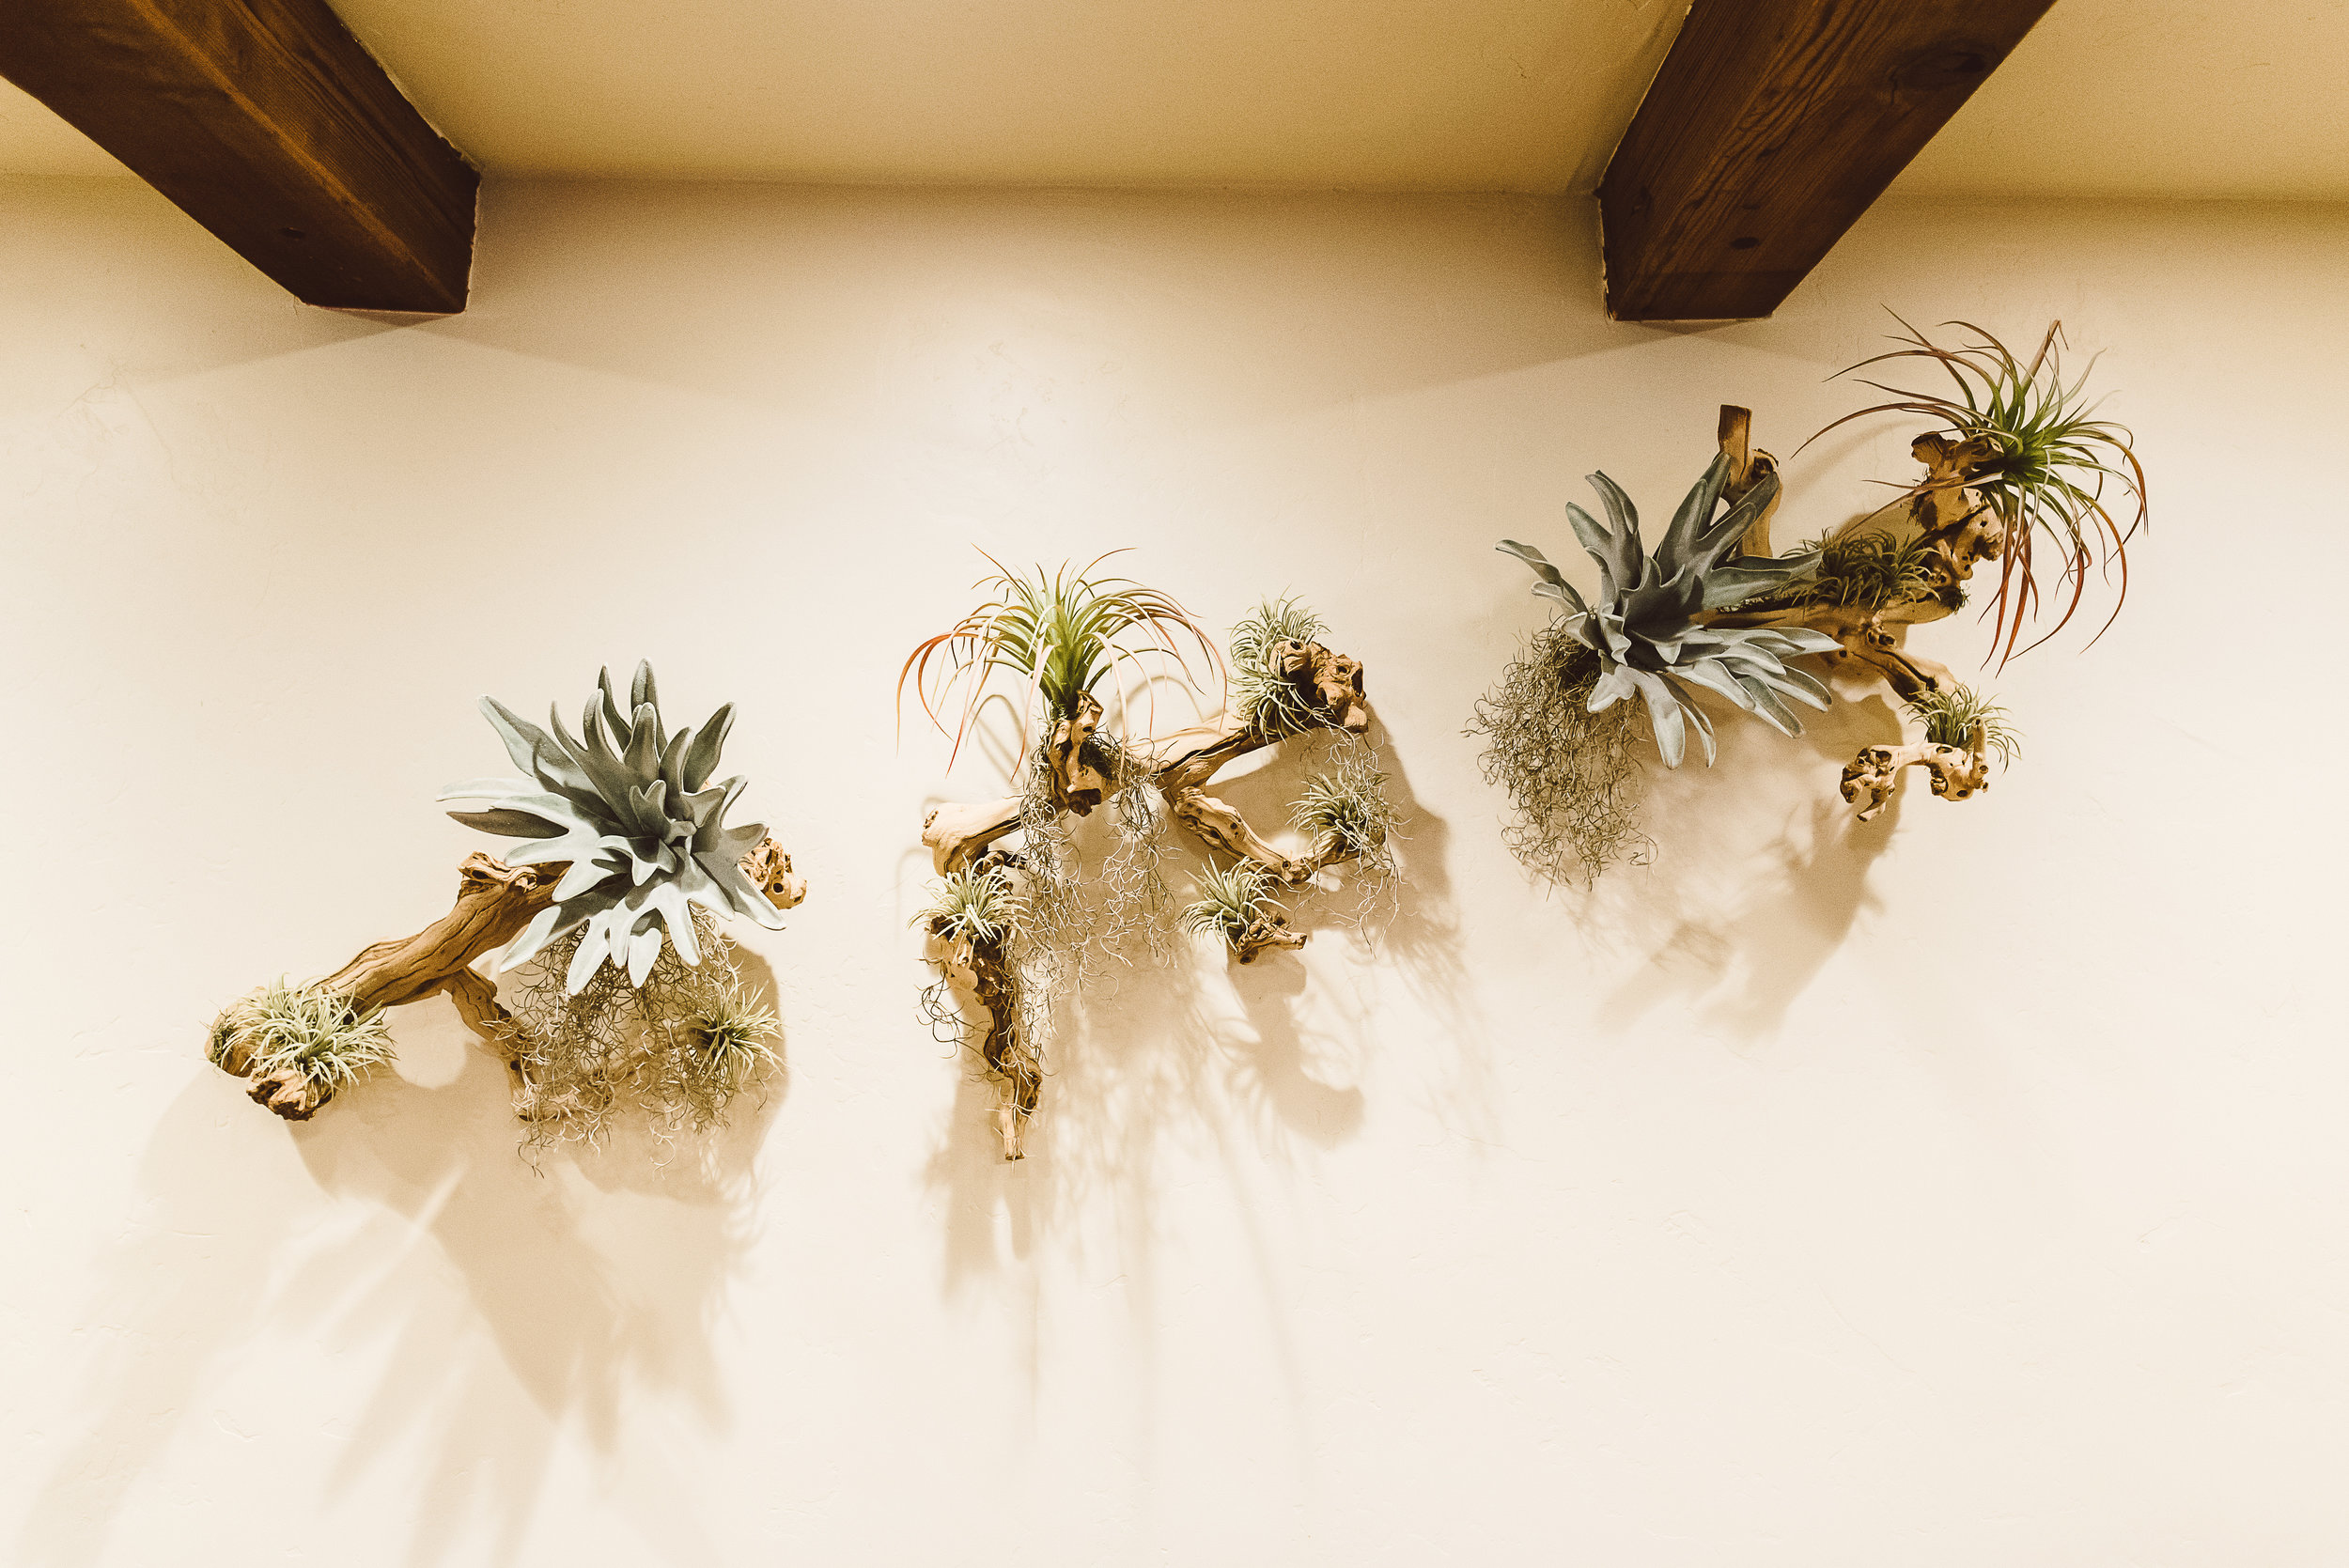 Faux Fern & Airplant Branch Sculpture Installation at Cocina Del Charro San Marcos - Nov 2017